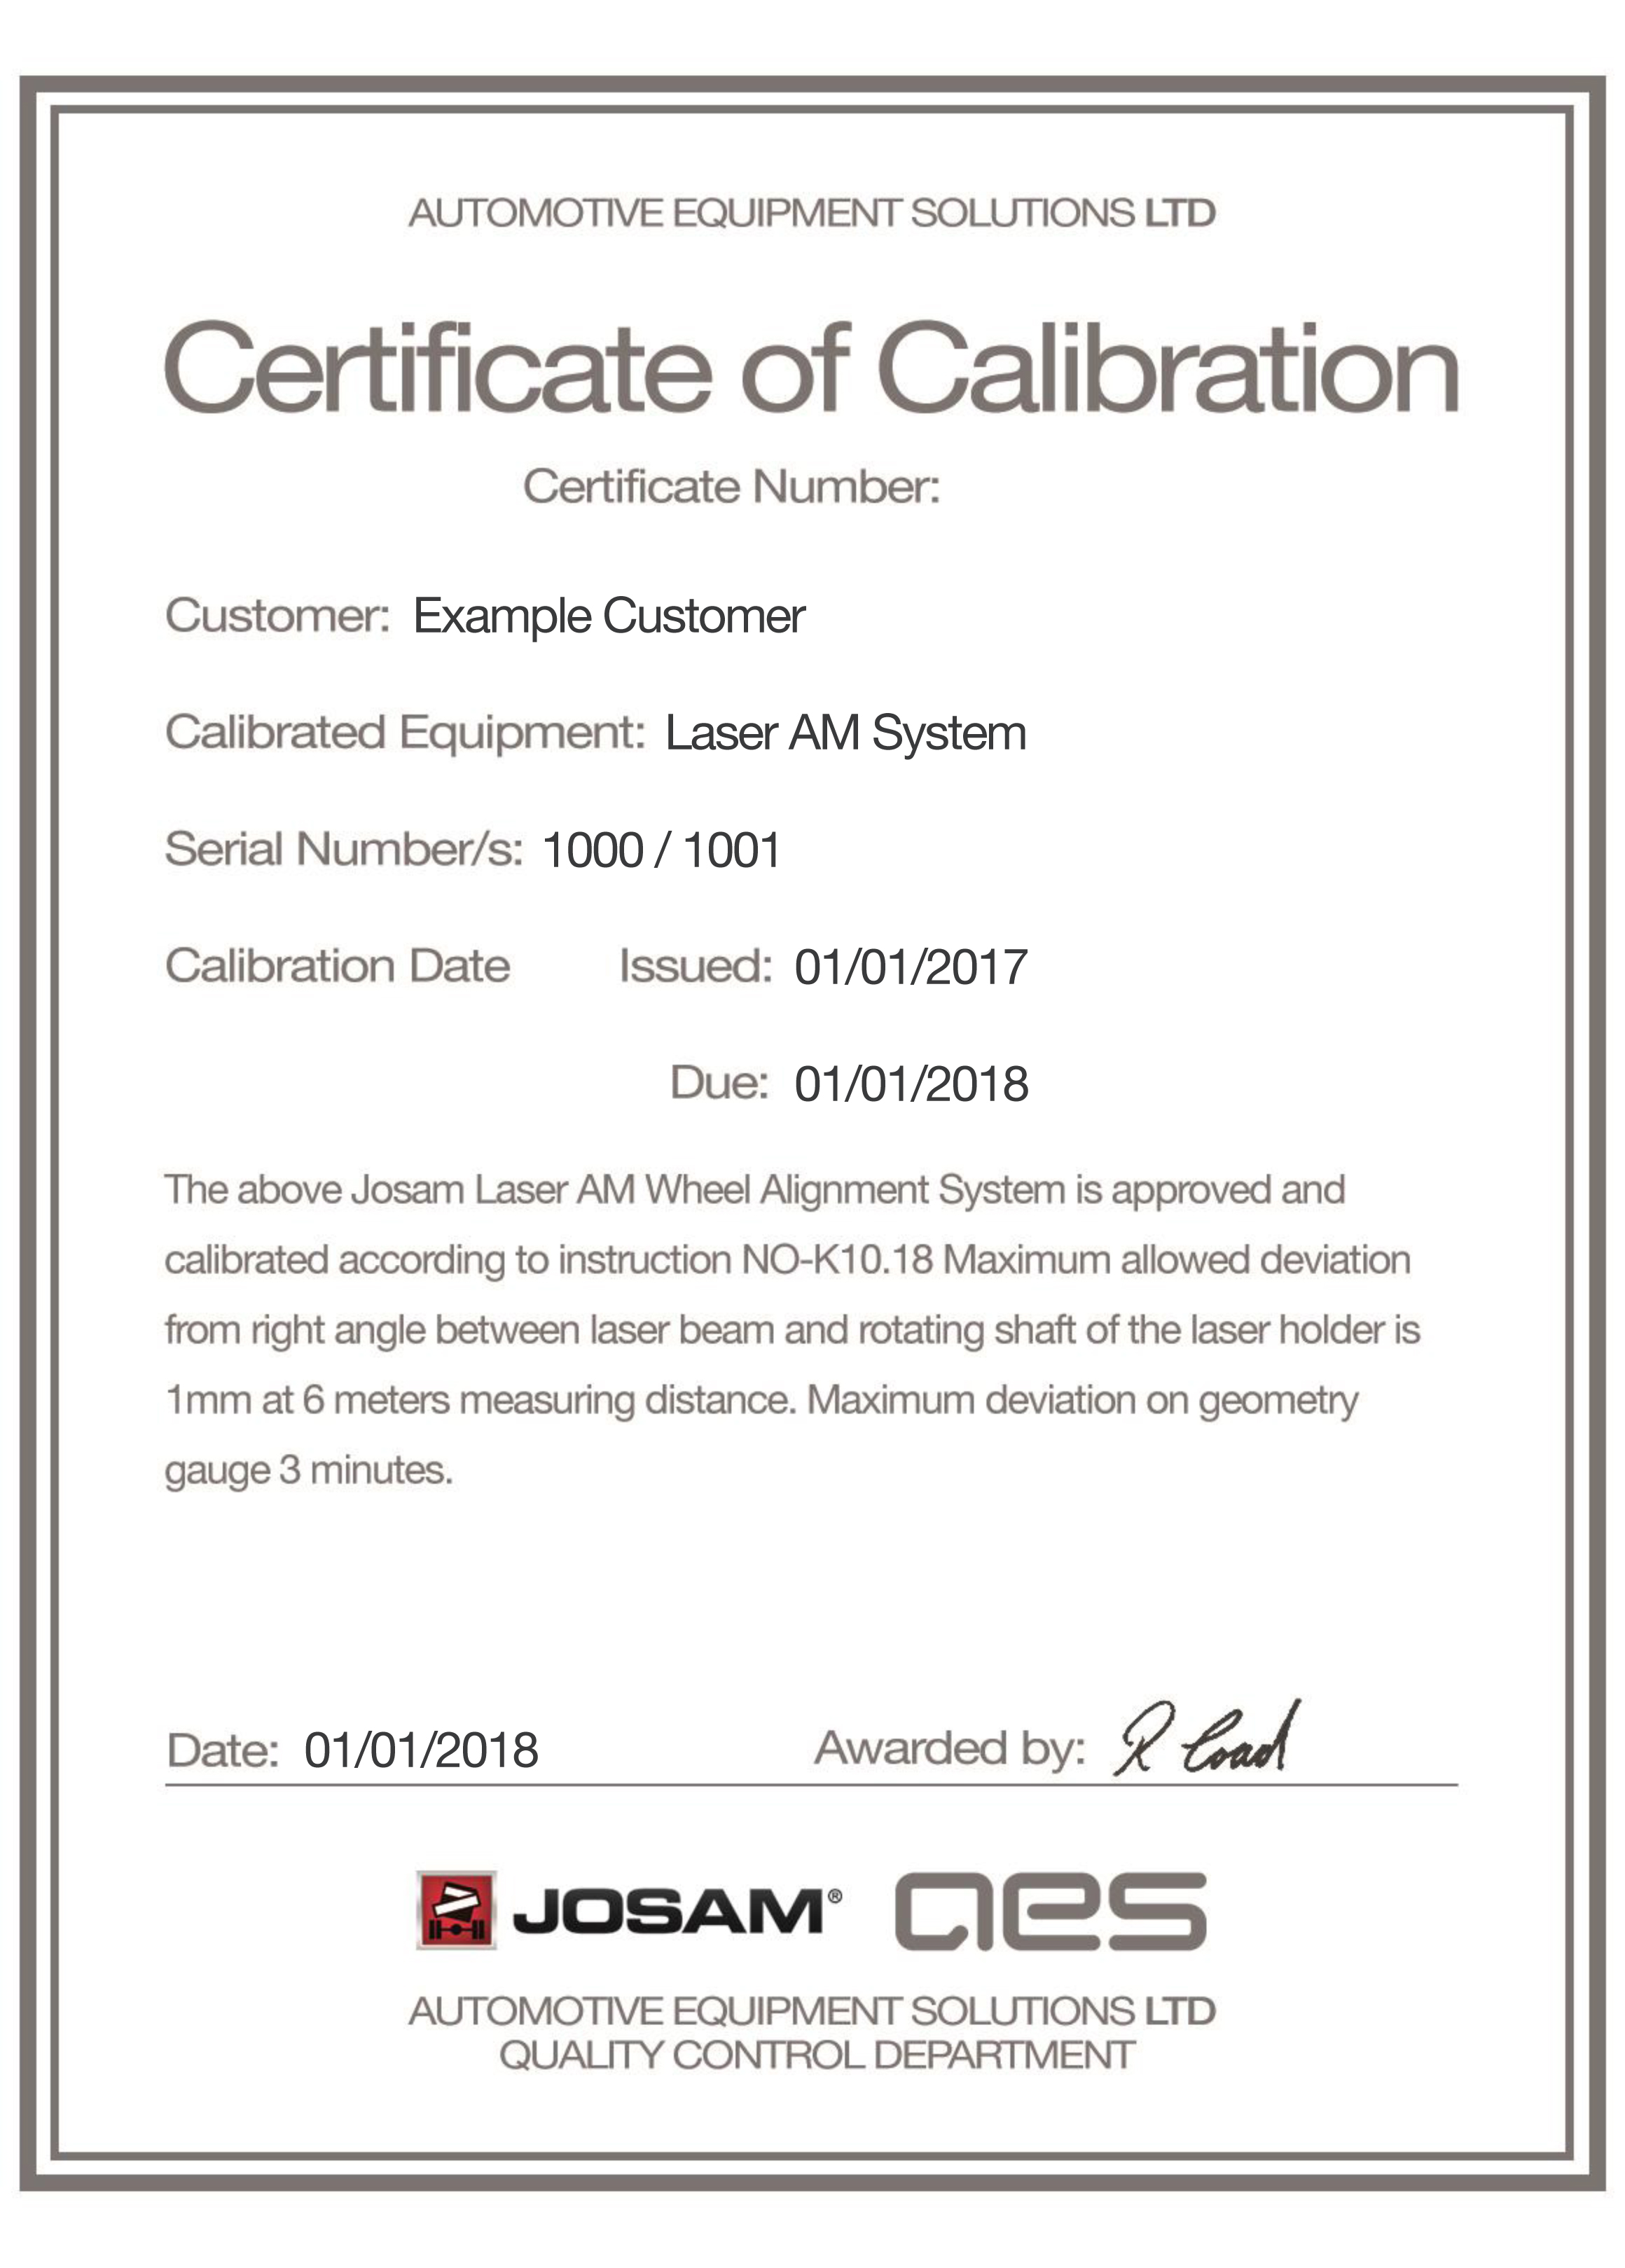 Moderno calibration certificate im genes para la for Pressure gauge calibration certificate template